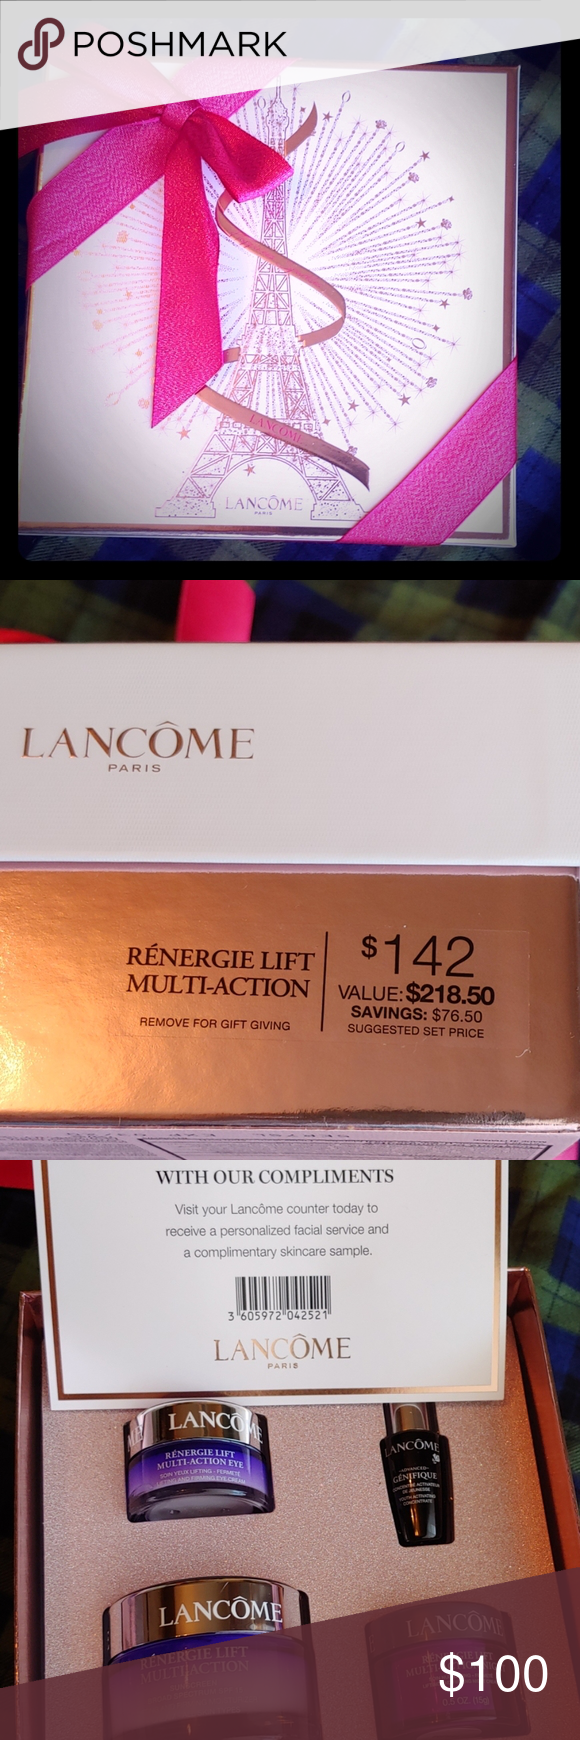 Renergie Lift MultiAction Collection NWT